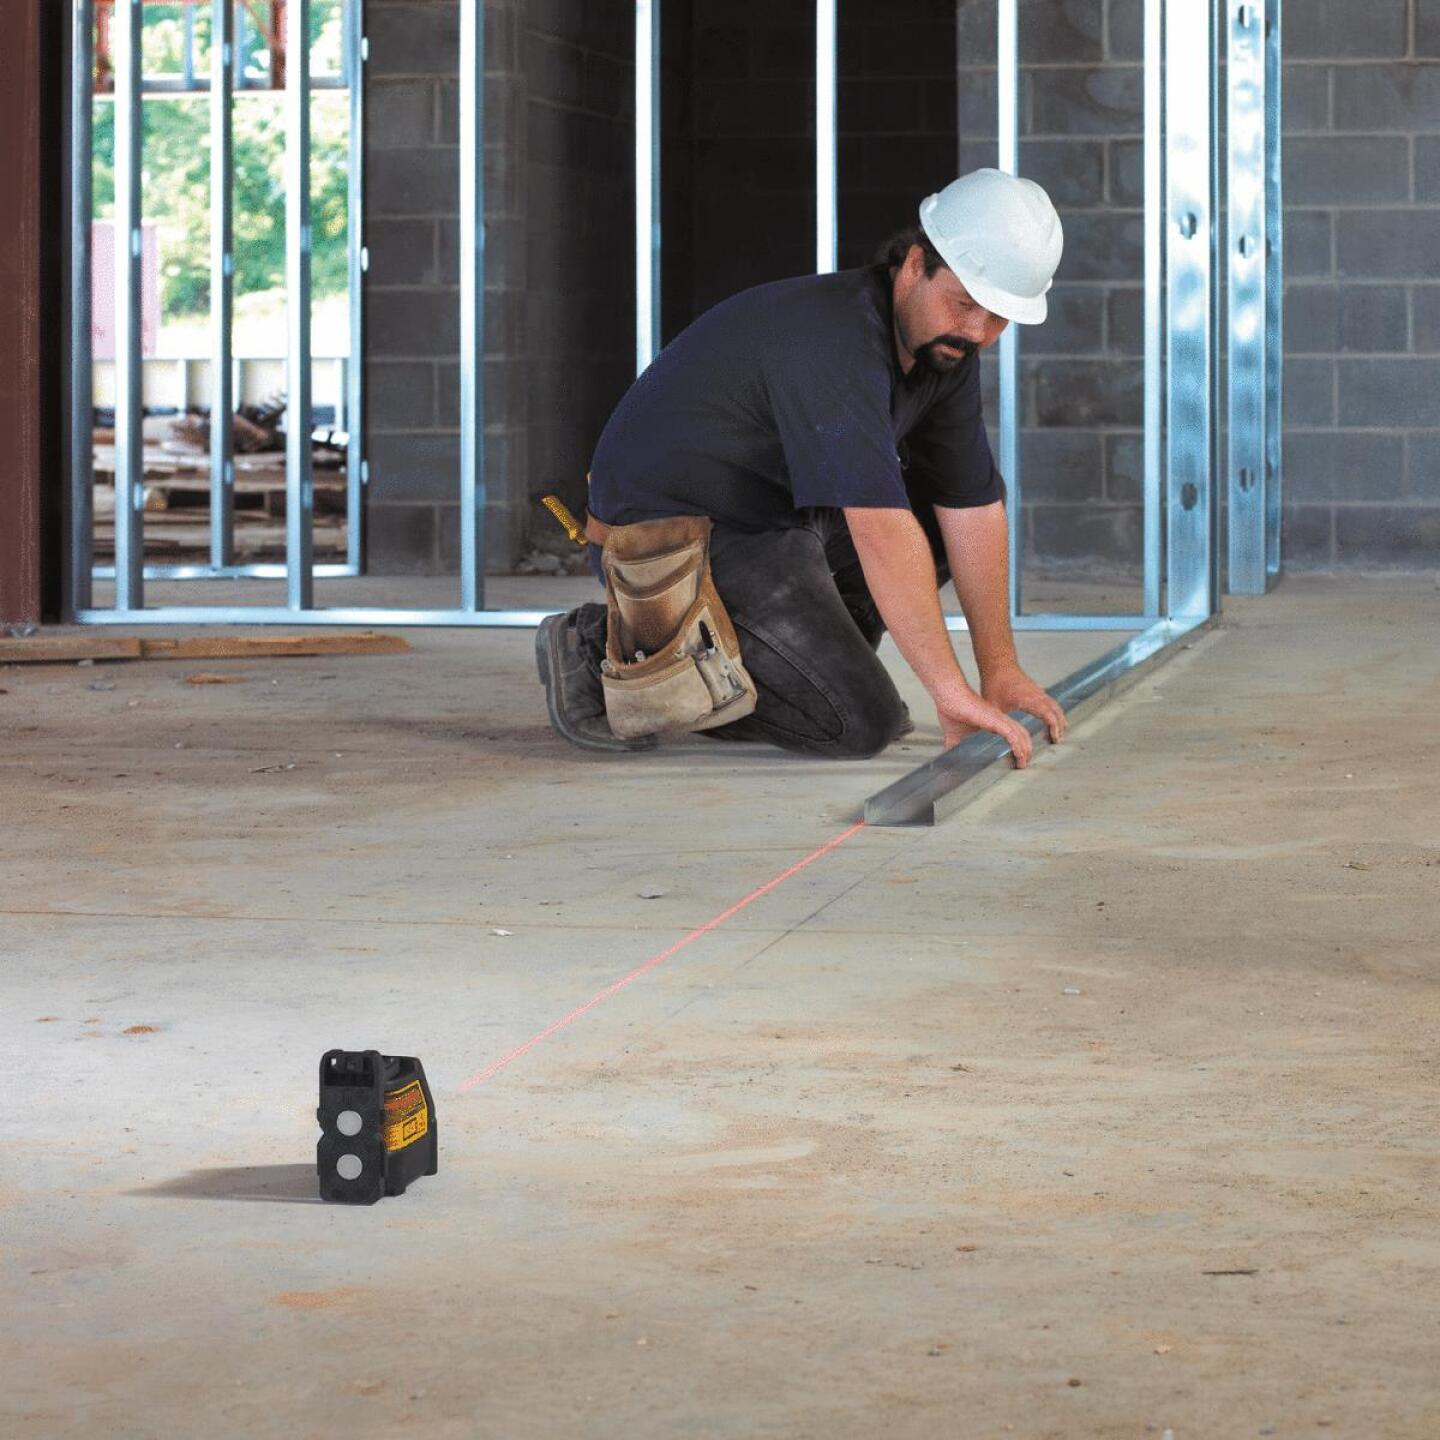 DeWalt 100 Ft. Self-Leveling Cross-Line Laser Level Image 3